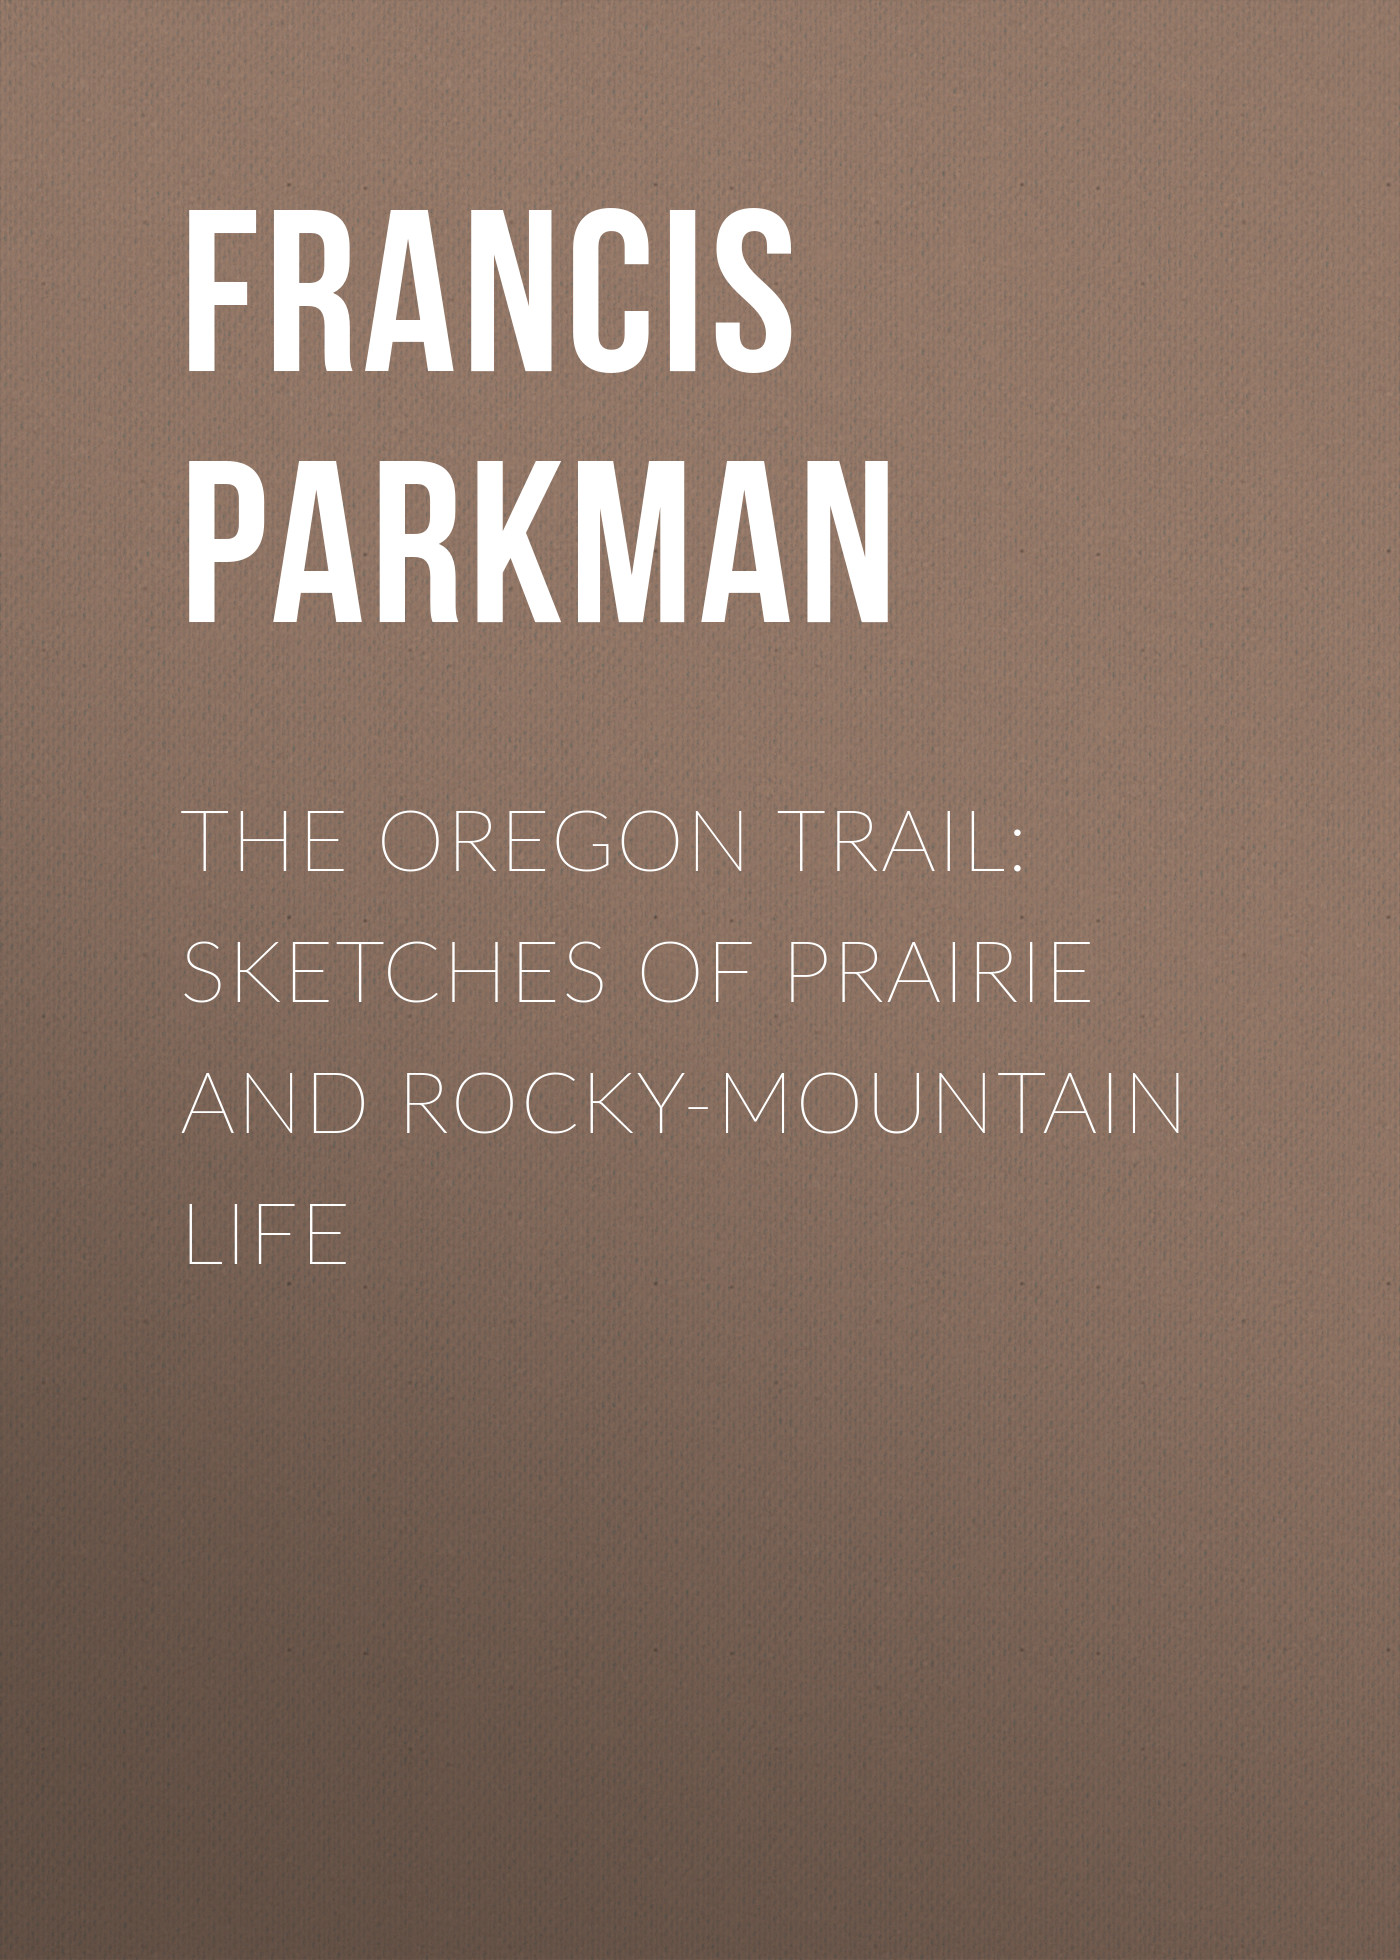 Francis Parkman The Oregon Trail: Sketches of Prairie and Rocky-Mountain Life francis parkman the conspiracy of pontiac and the indian war after the conquest of canada microform